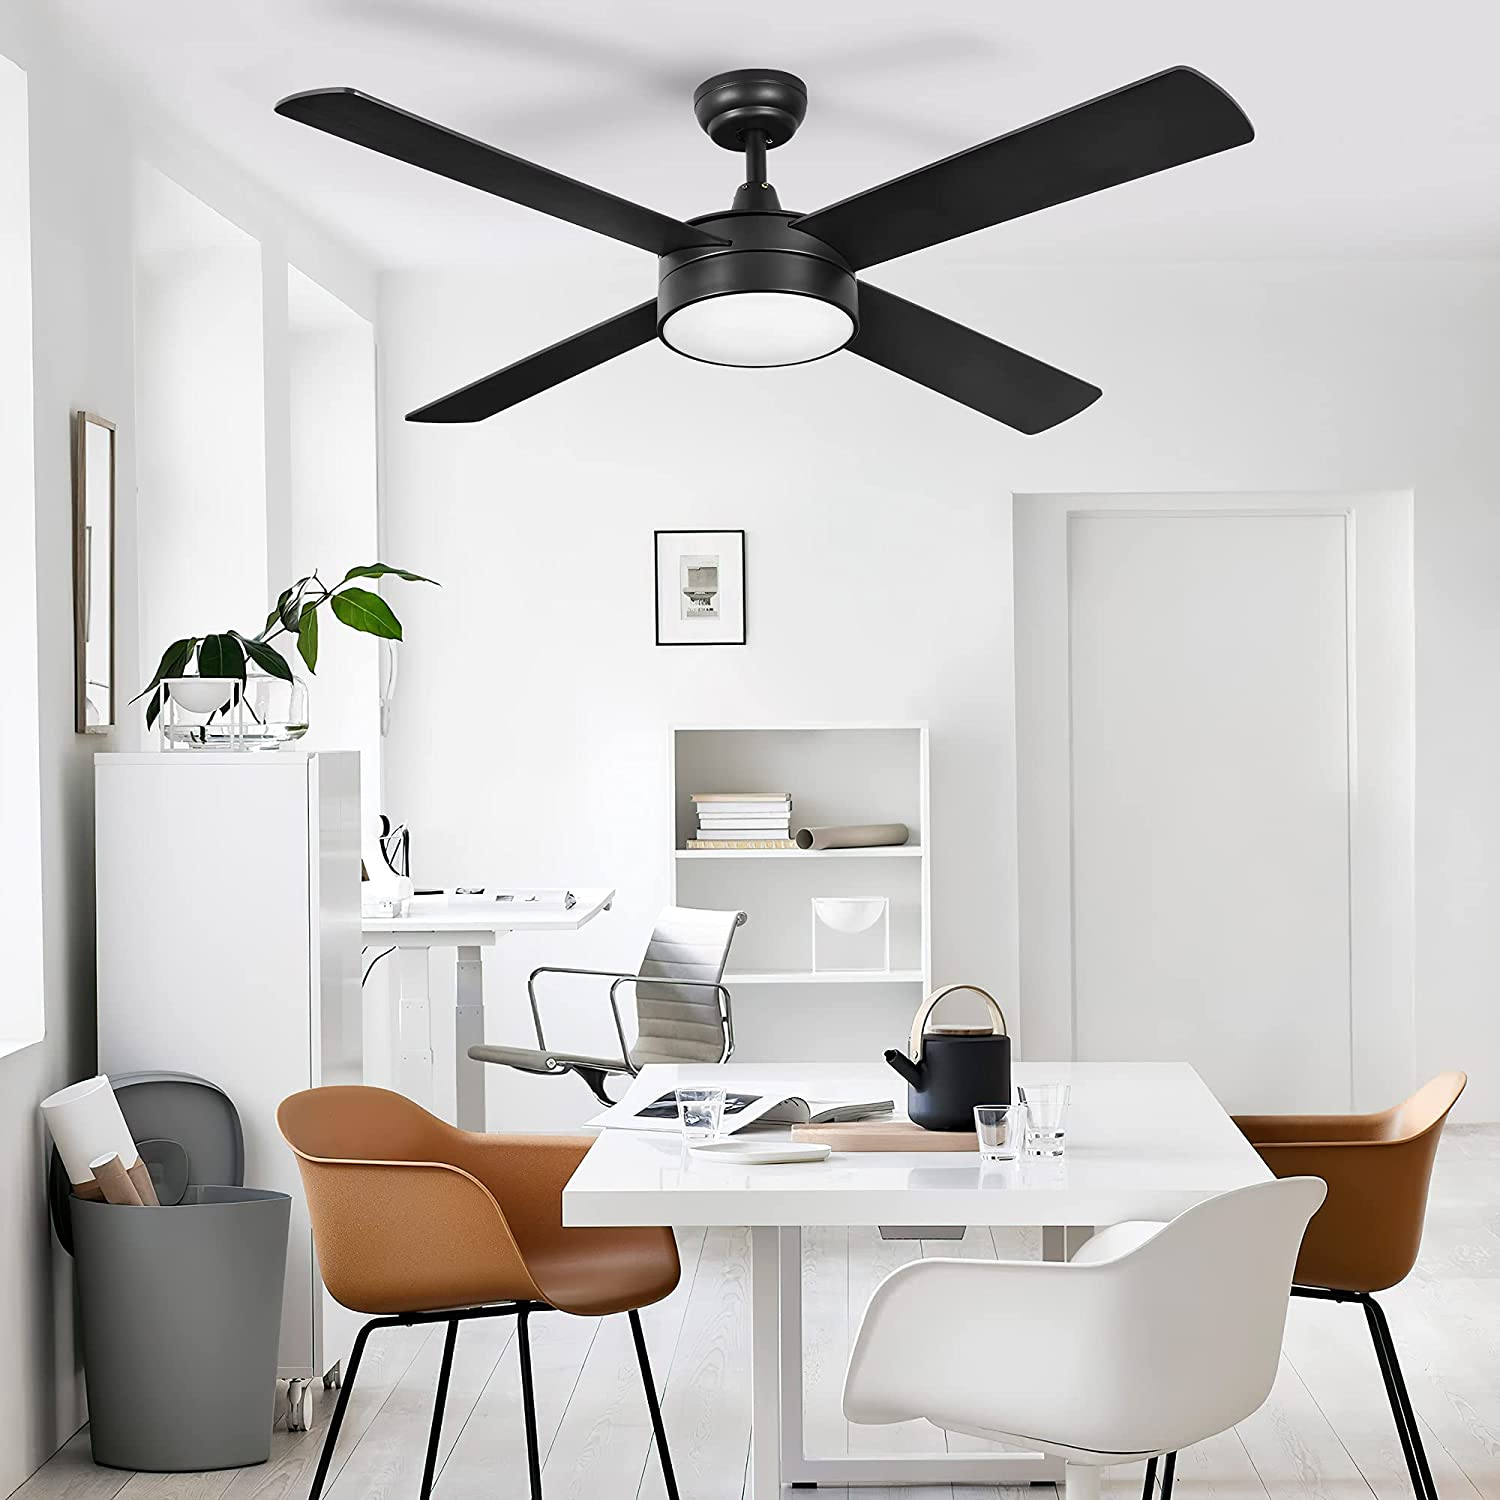 Buy Yitahome 52 Ceiling Fan With Light And Remote Modern Low Profile Reversible Fanlight With 3 Color Temperatures 3 Level Speeds Timing Outdoor Fans For Patio Living Room Bedroom Black Online In Germany B08nf4bqgf